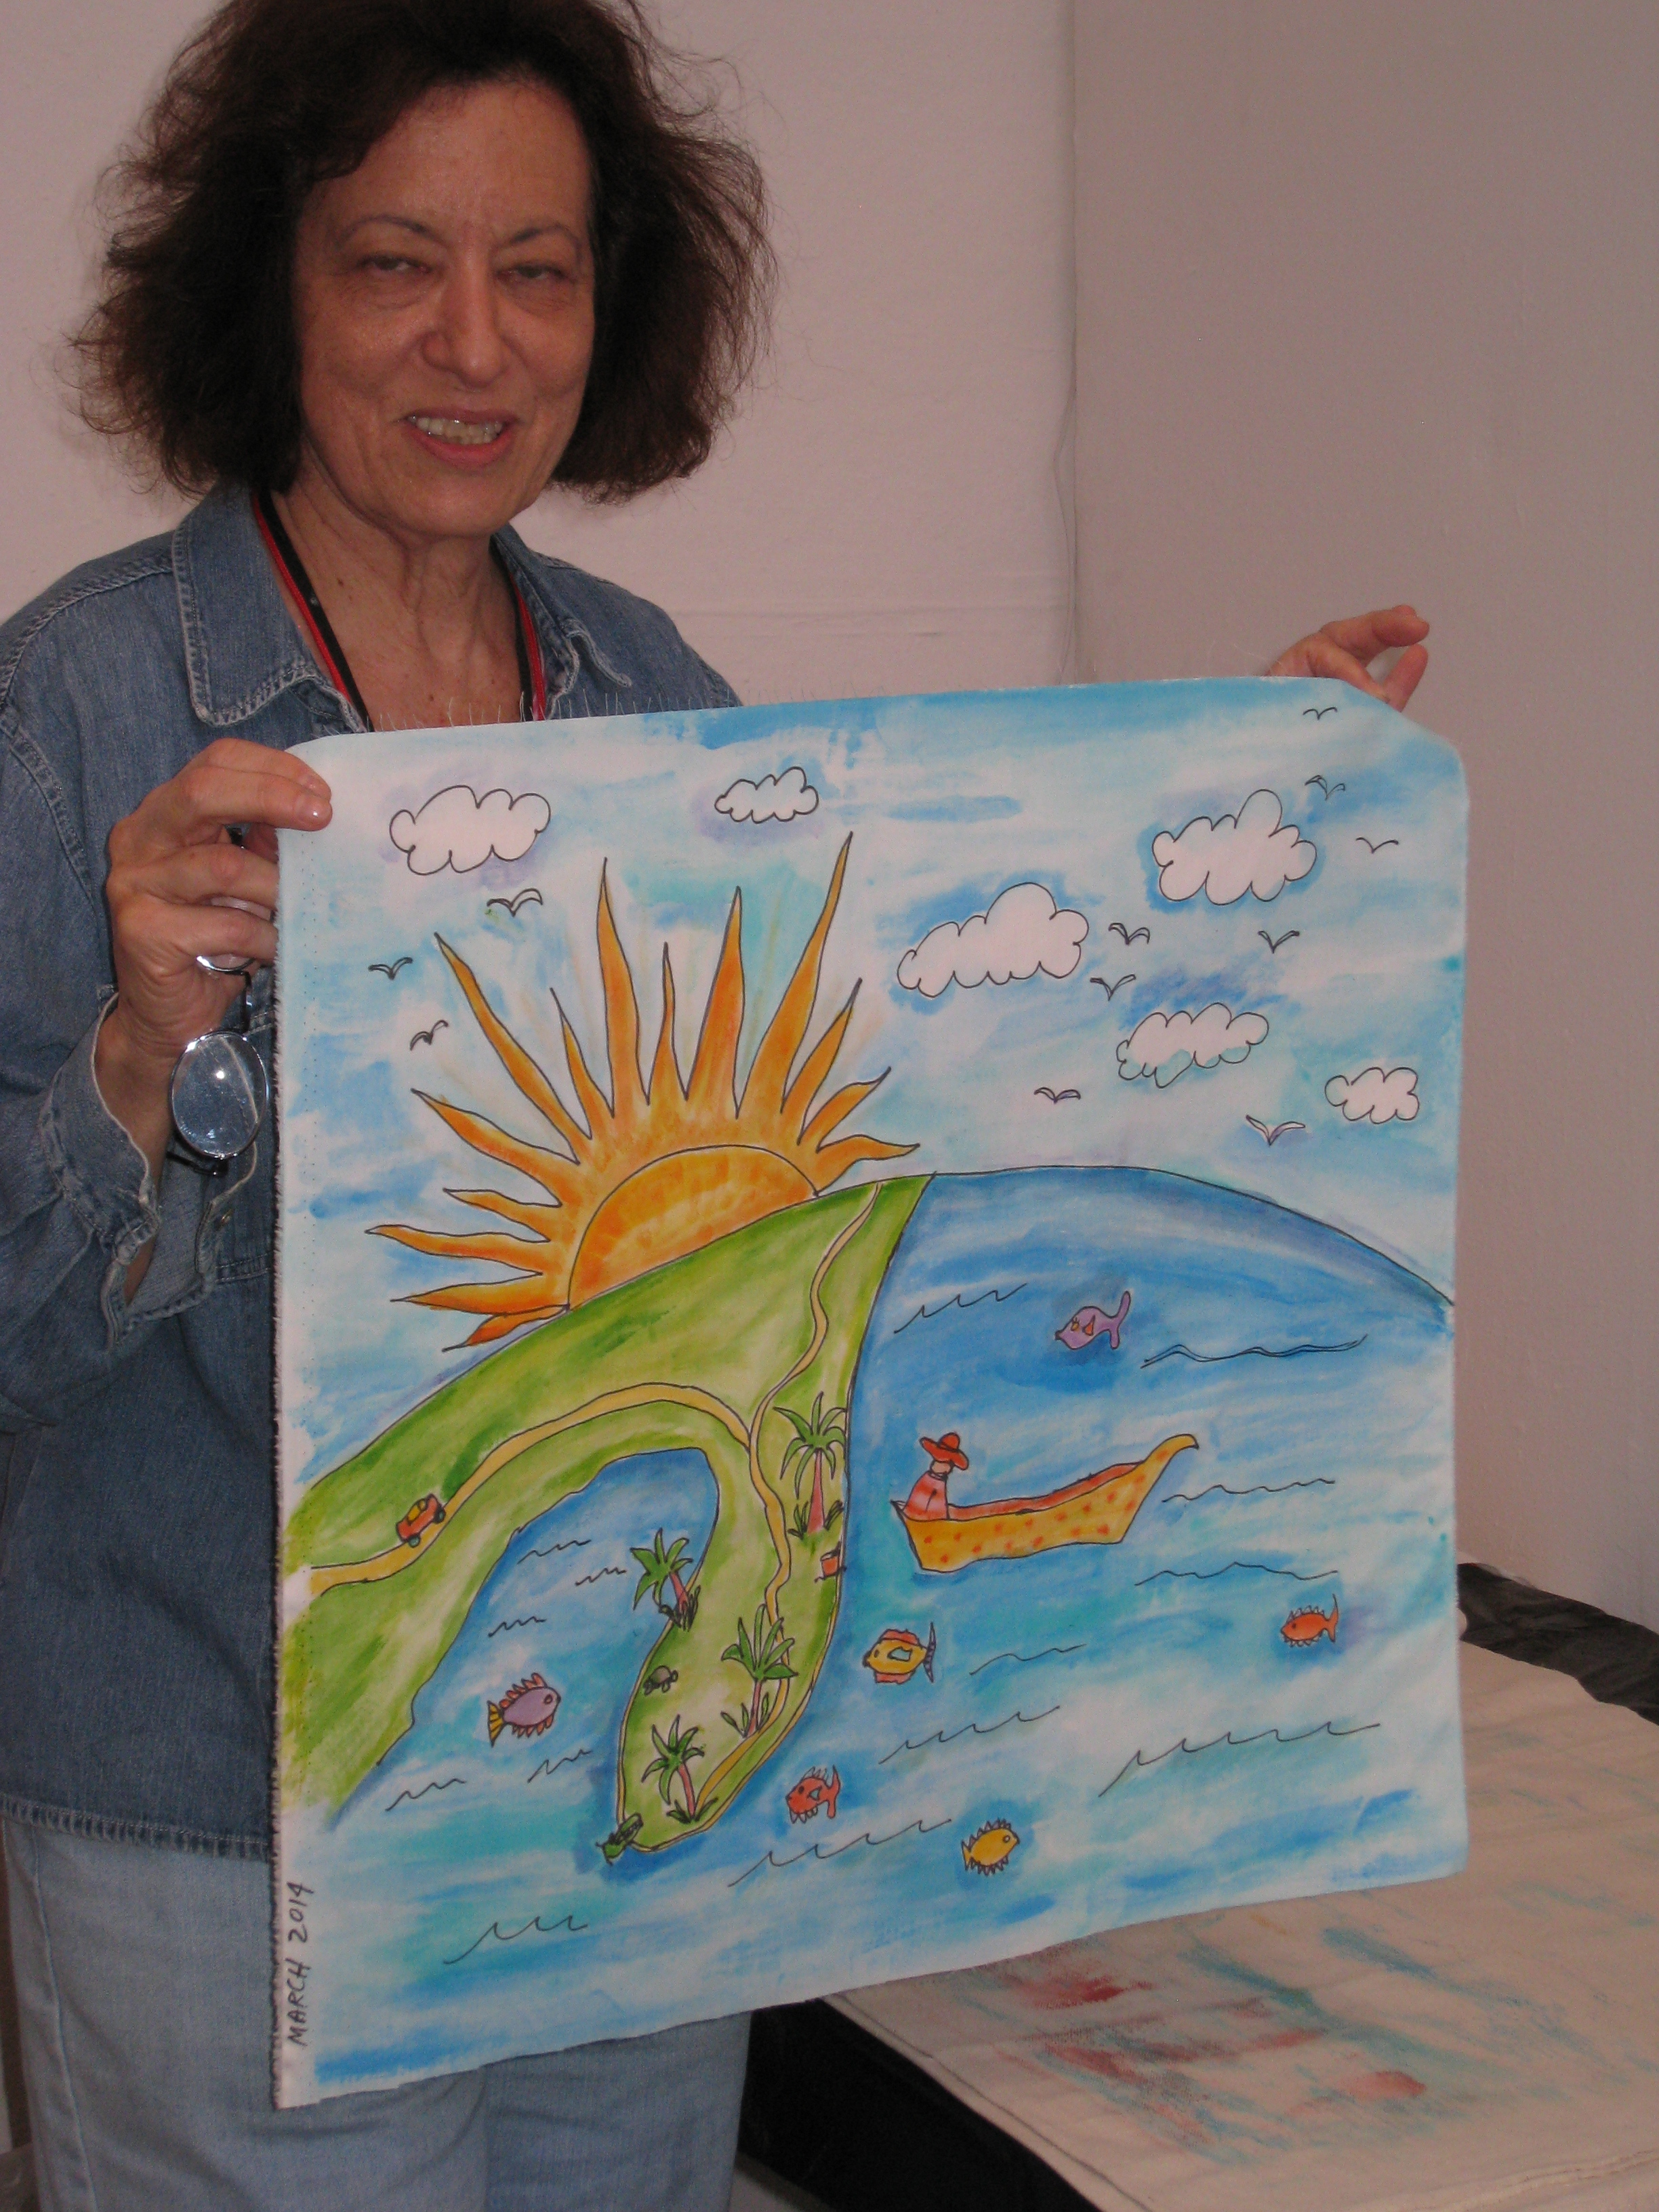 Susan Rienzo with a work in progress using Susan Shie's approach